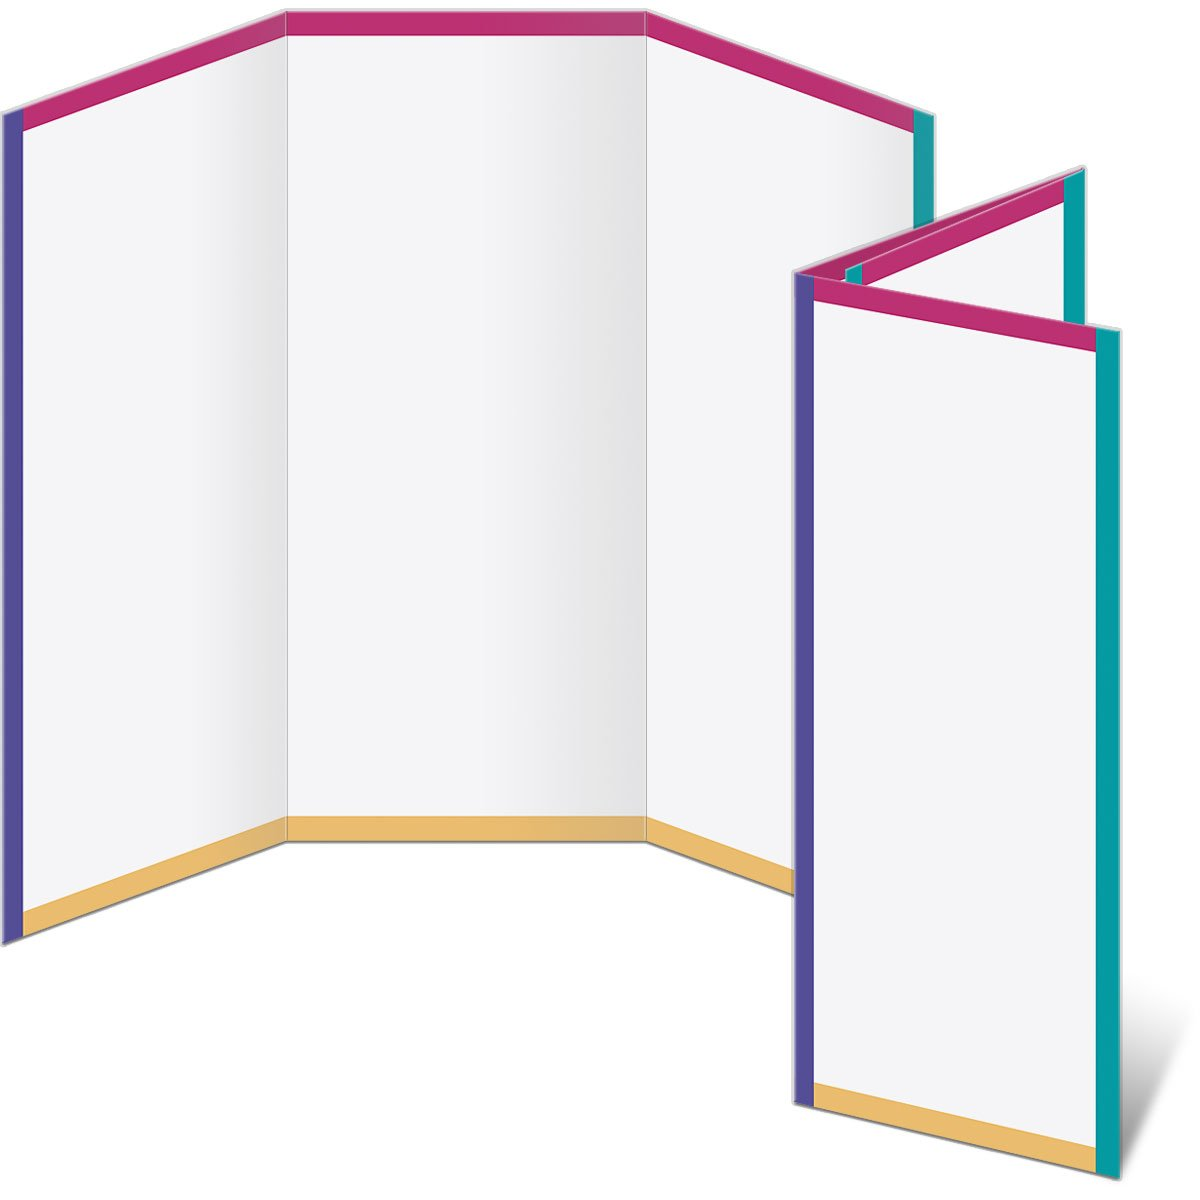 Colorful 3-Panel Brochure, 80 lb, 8.5 x 11 Inches, 300 Count